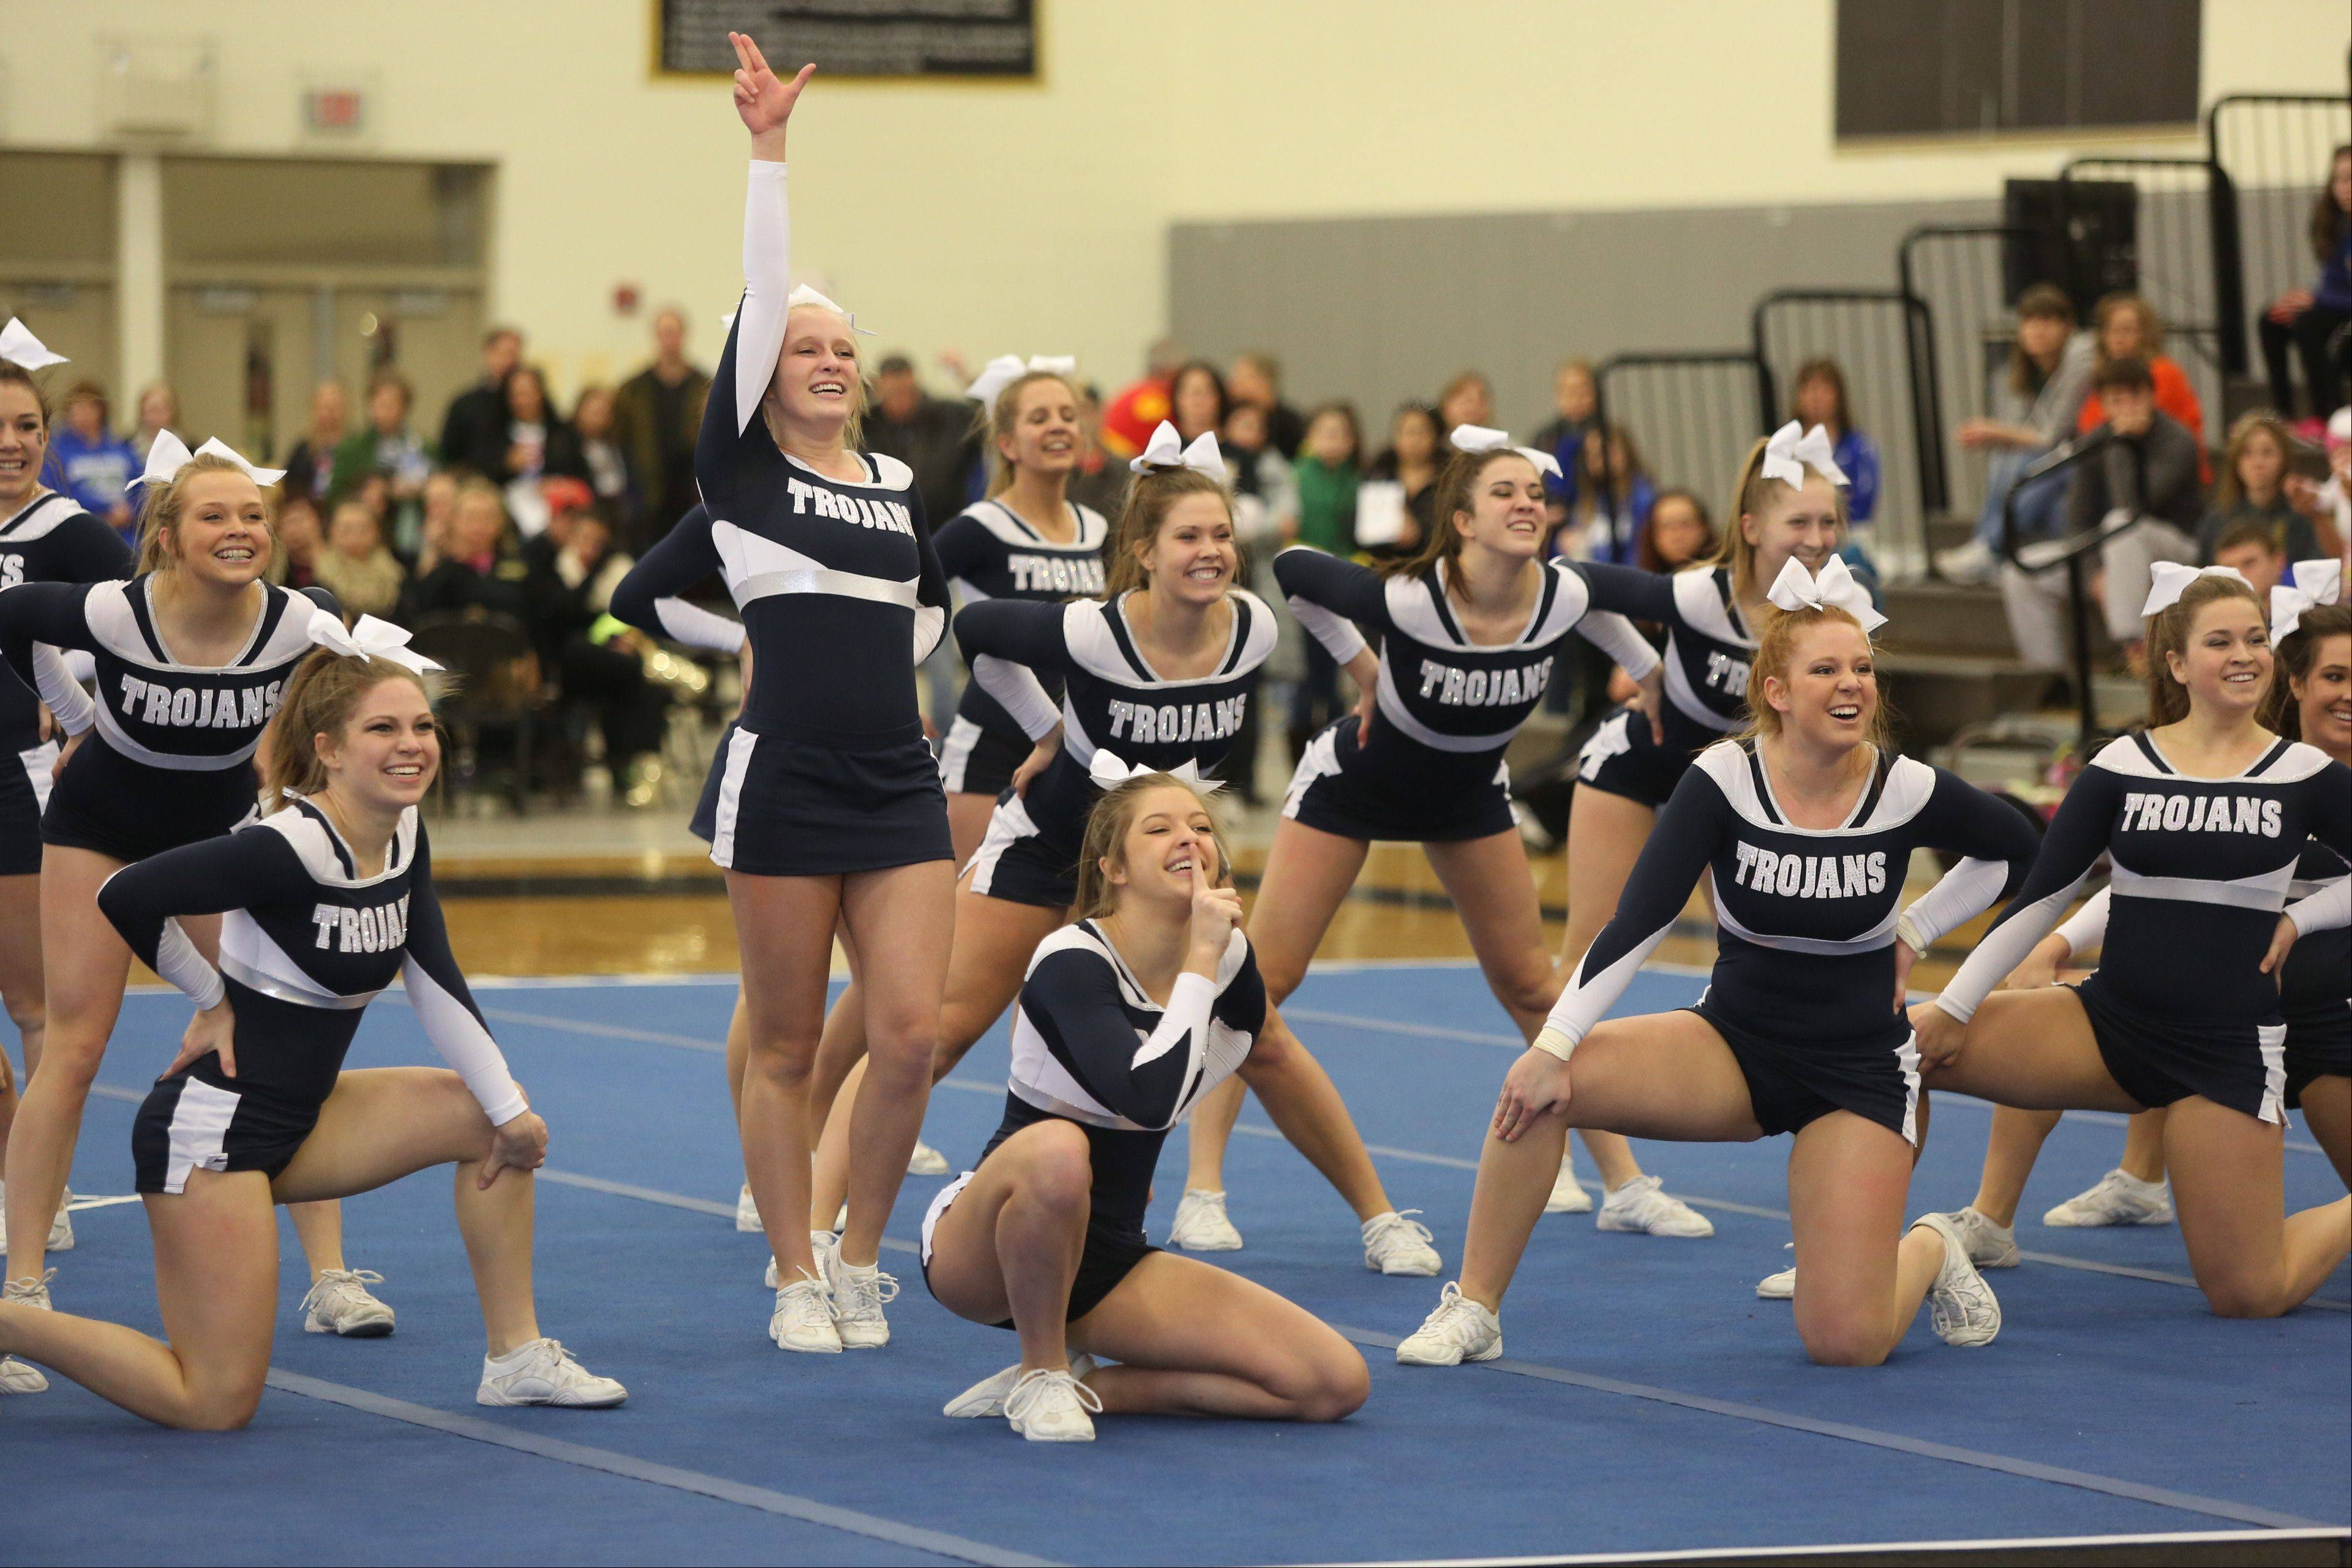 Cary-Grove High School competes in the Large Team category during the IHSA Cheerleading Sectional Sunday hosted by Grayslake North High School.